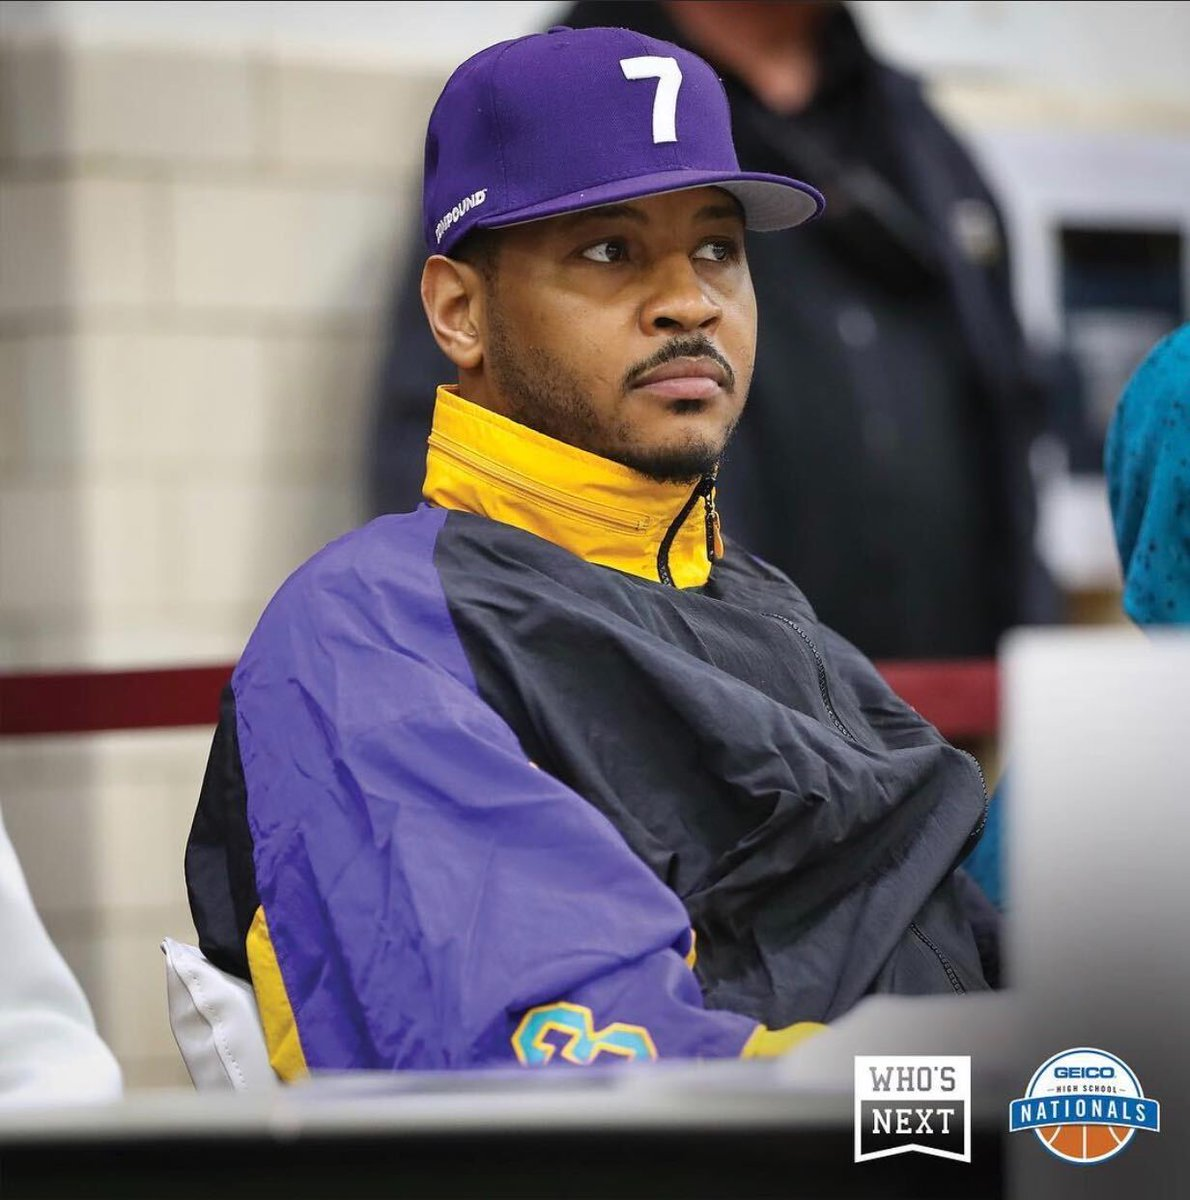 Happy 36th to Carmelo! That time he pulled up to #GEICONationals to support the alma mater 🎂 https://t.co/Sc0QOKwXCD